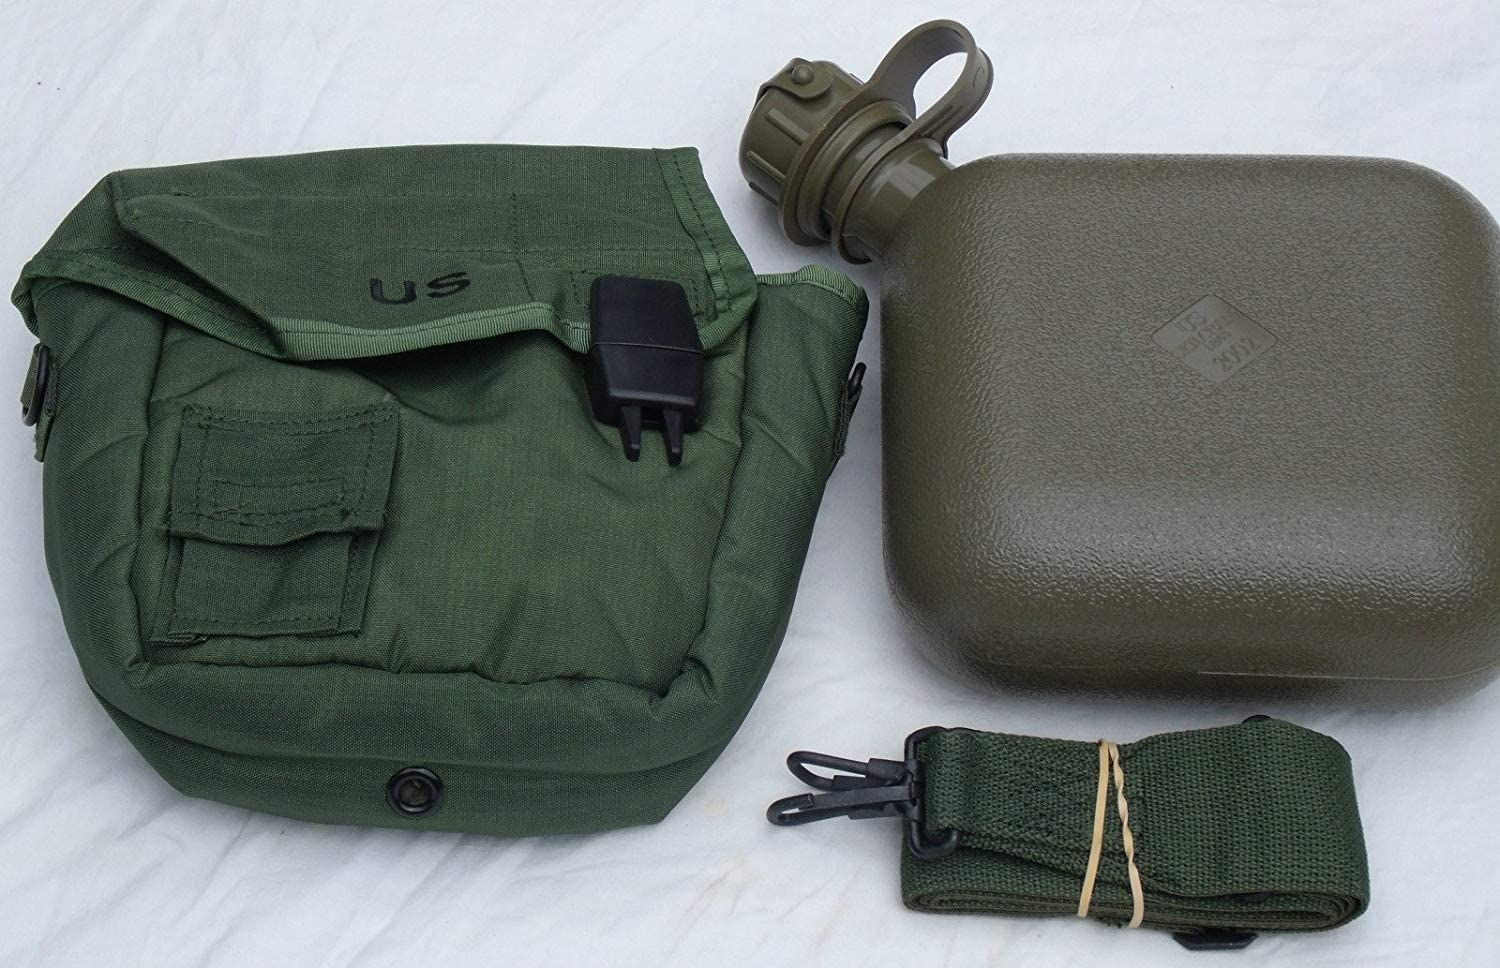 OD GREEN 2QT 2 QUART CANTEEN CARRIER US MILITARY ALICE CLIPS COVER POUCH STRAP